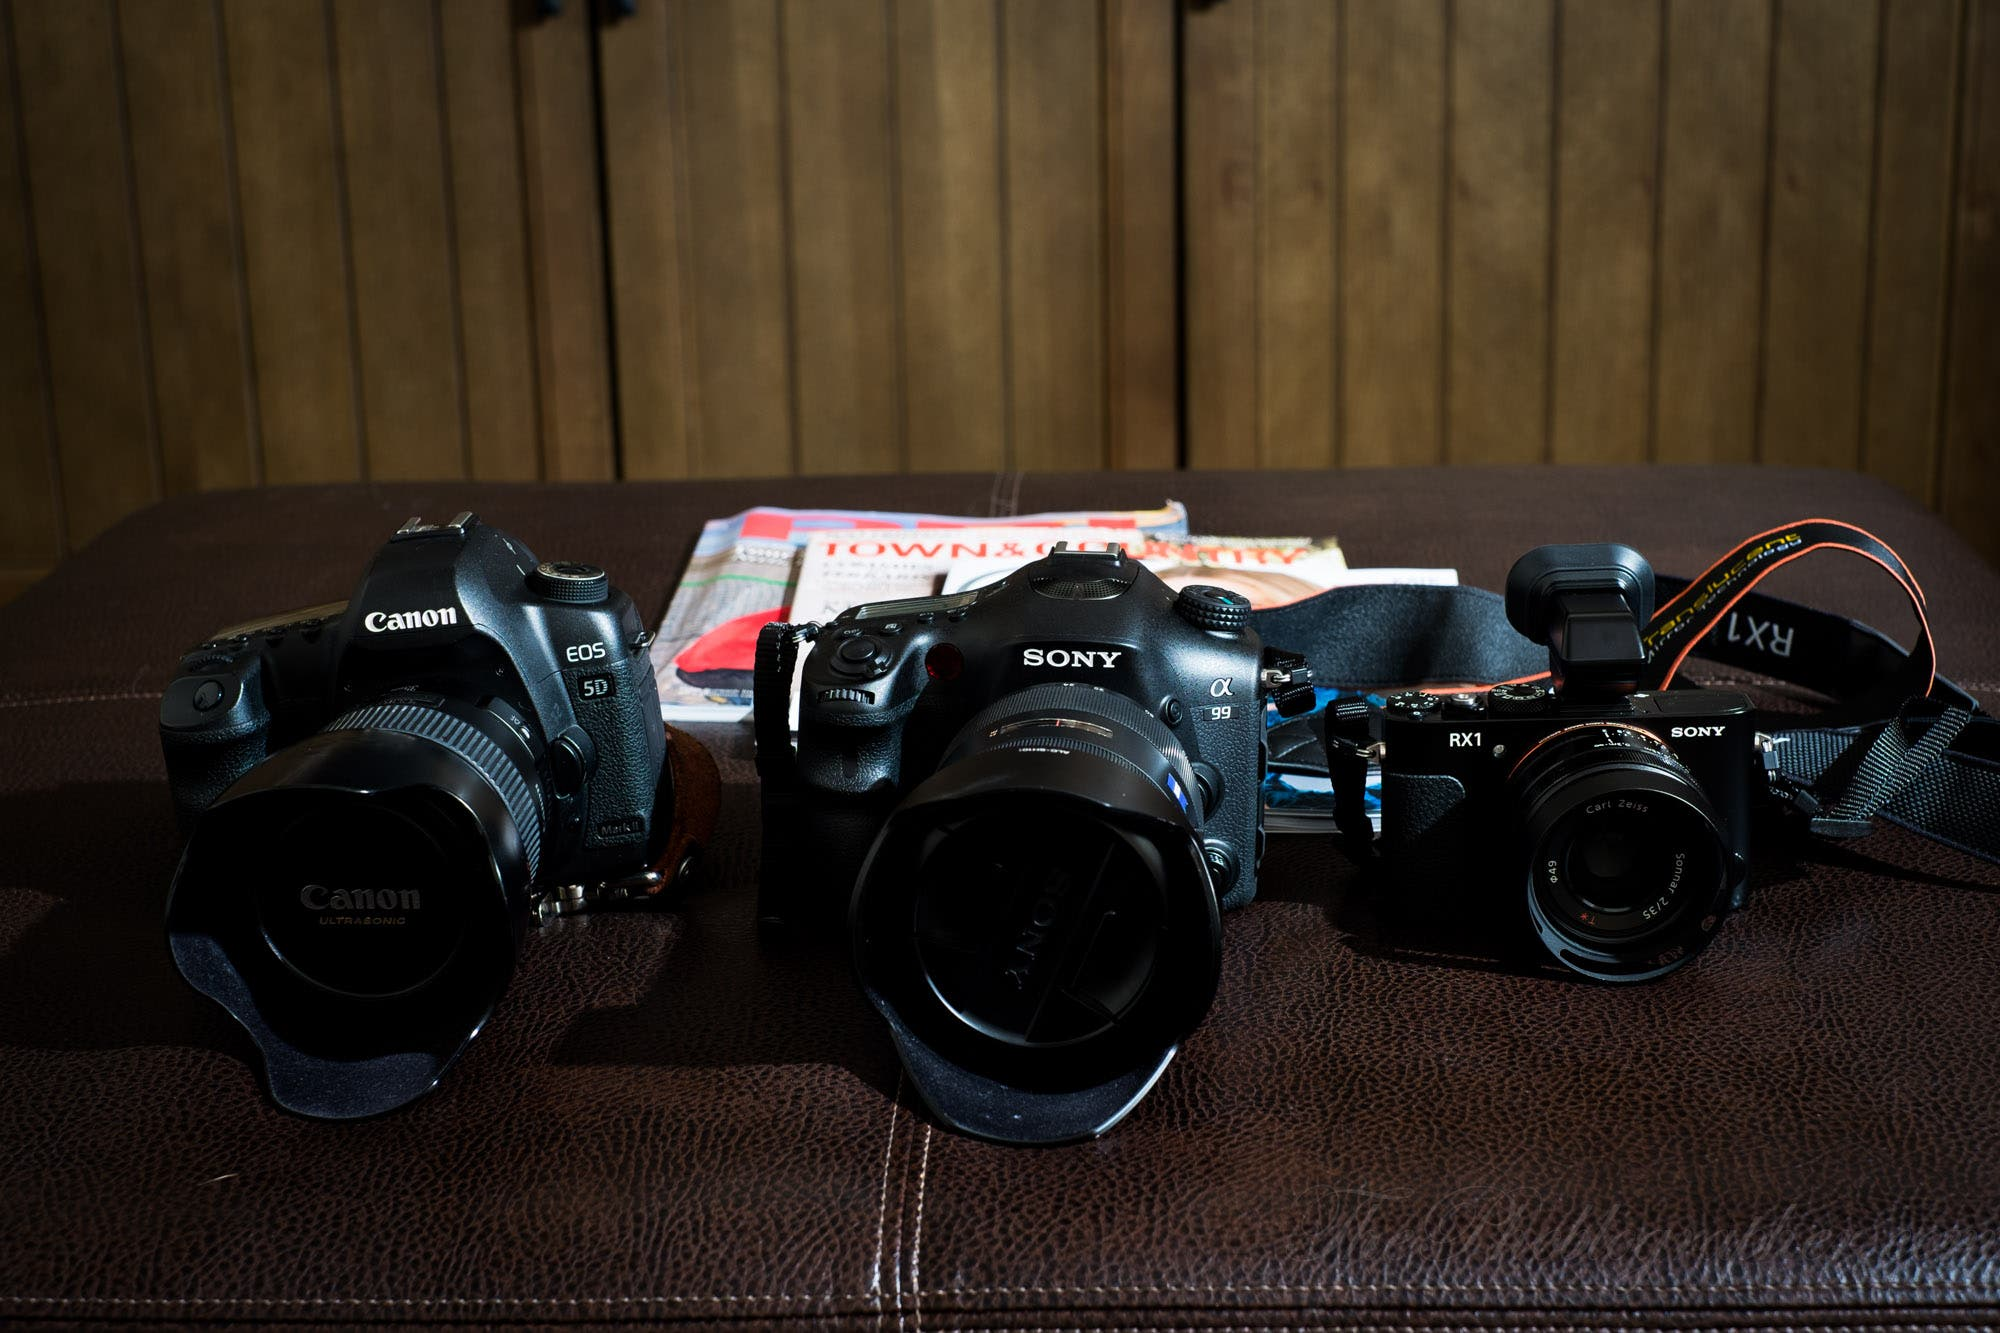 Informal High ISO RAW File Image Comparison: Canon 5D Mk II vs Sony A99 vs Sony RX-1